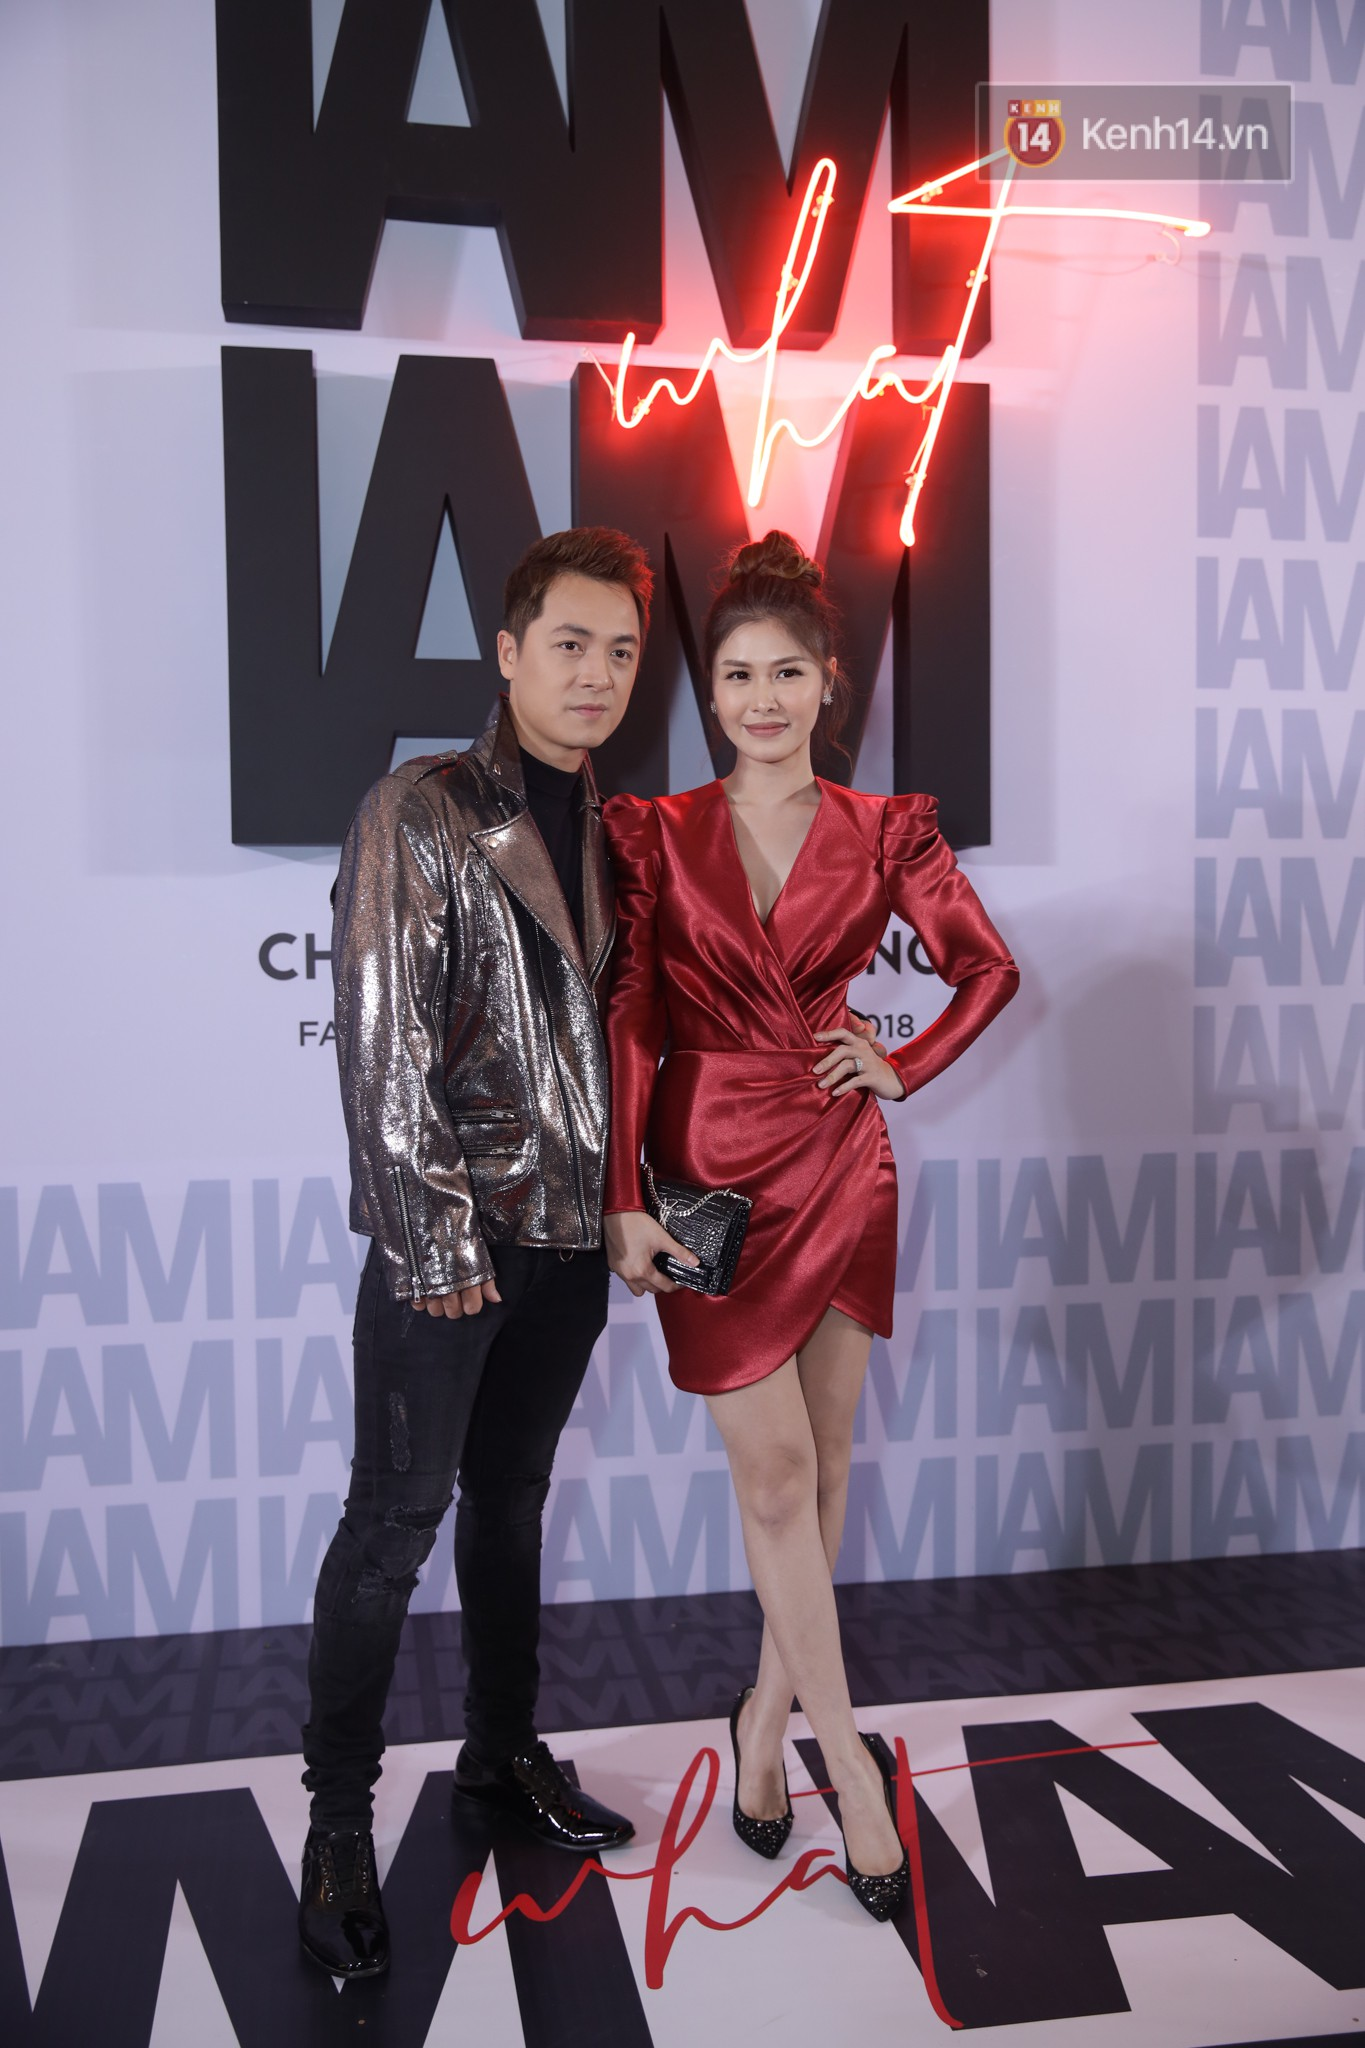 Red carpet Chung Thanh Phong show: It was able to try out strange jewelry, Quỳnh Anh Shyn caught birds as rain - a picture of 17.